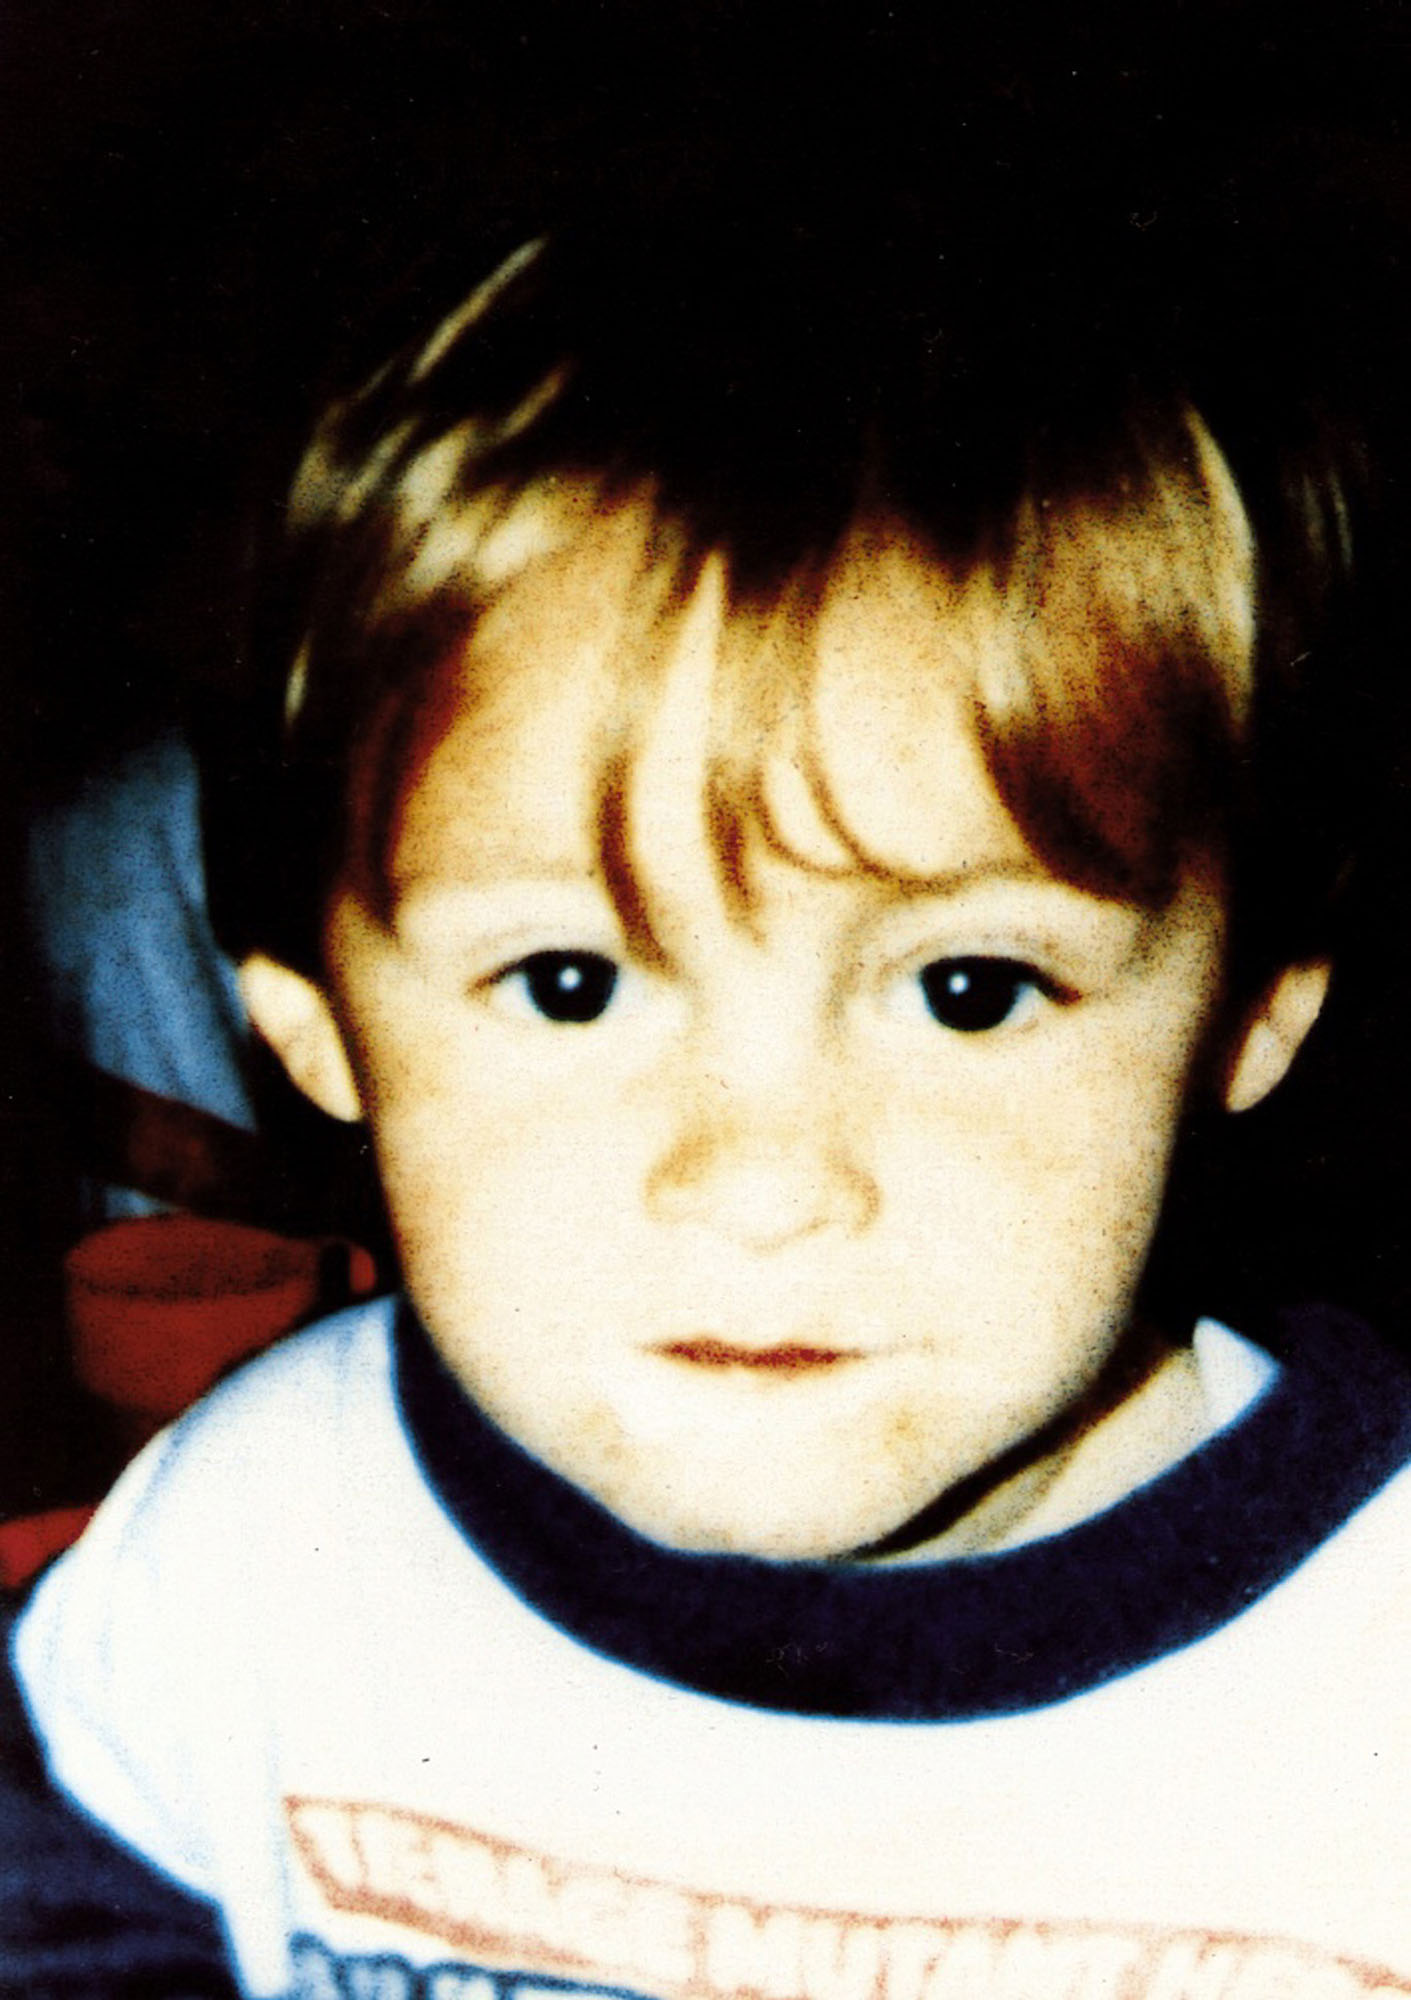 FILE PHOTO: An undated photo of 2 year-old James Bulger, tortured and killed by Jon Venables and Robert Thompson in Bootle, England, in 1993. Both Thompson and Venables were 10 years-old when they tortured and killed 2 year-old James Bulger in Bootle, England. (Getty Images)